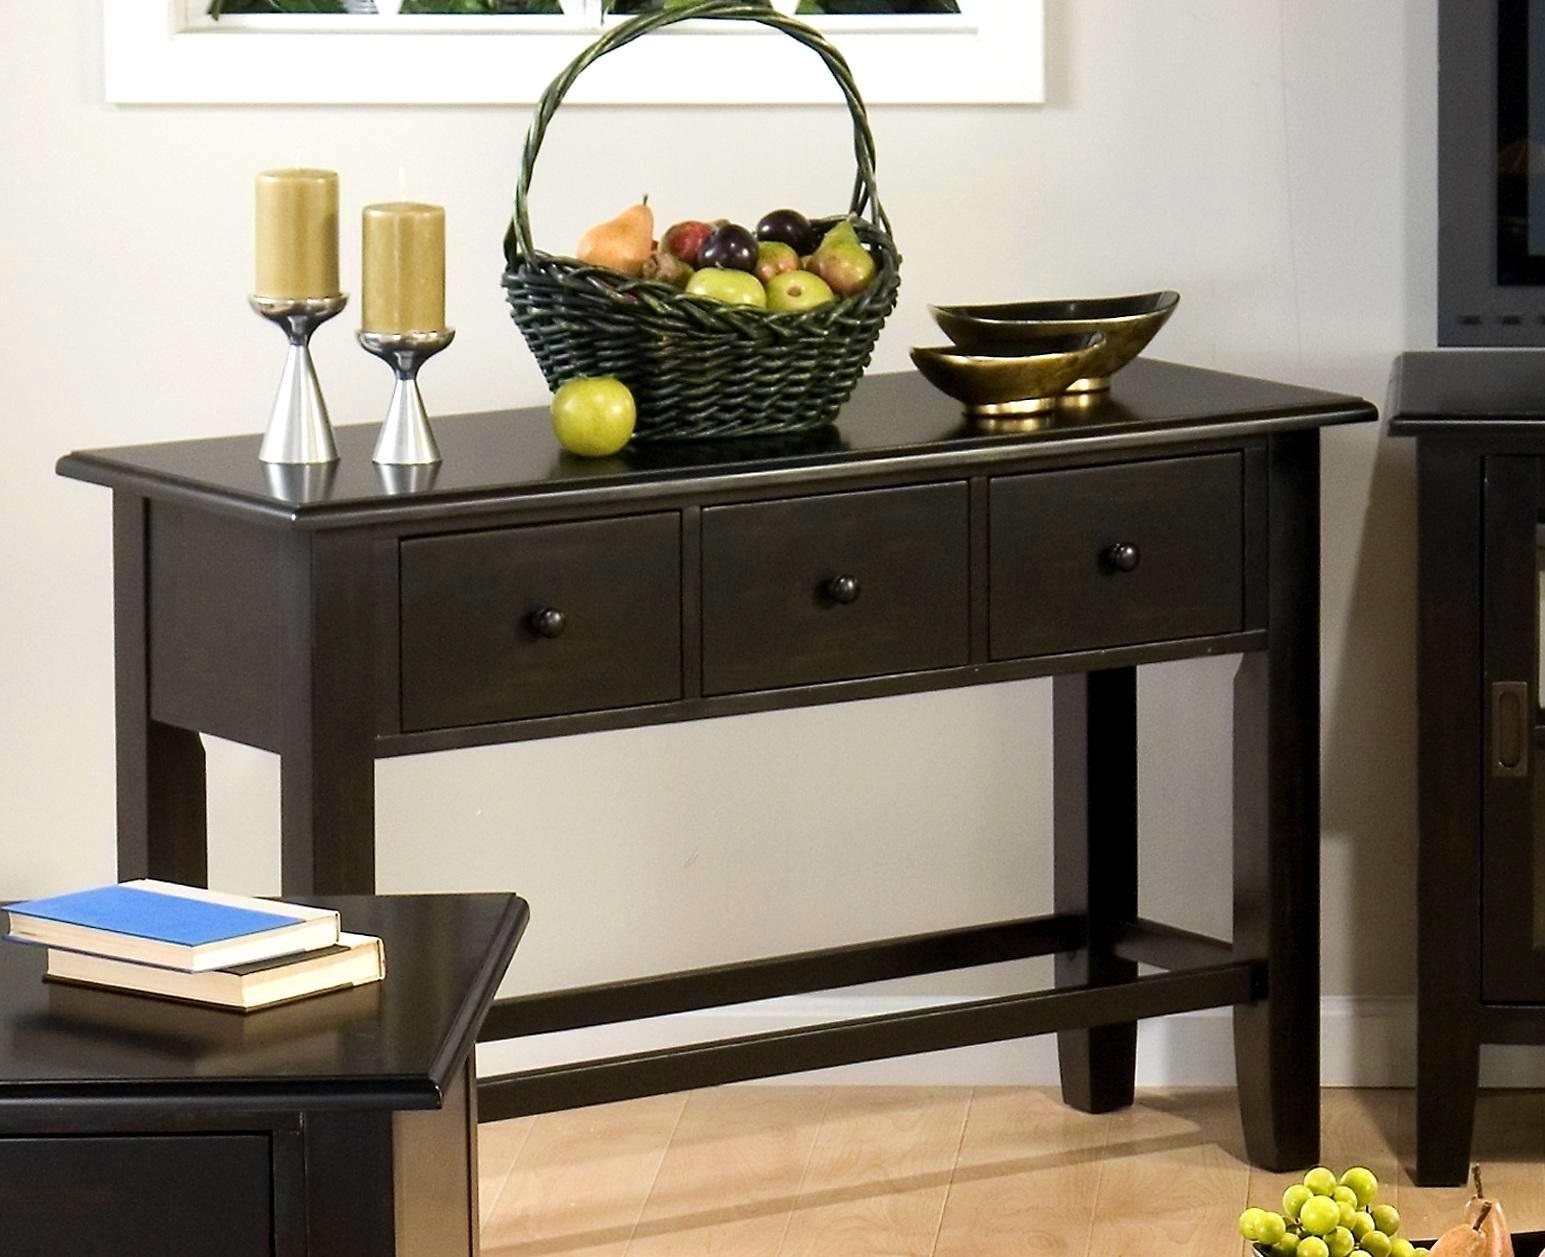 Black Sofa Table With Drawers | Sofa Gallery | Kengire With Sofa Table Drawers (Image 2 of 20)